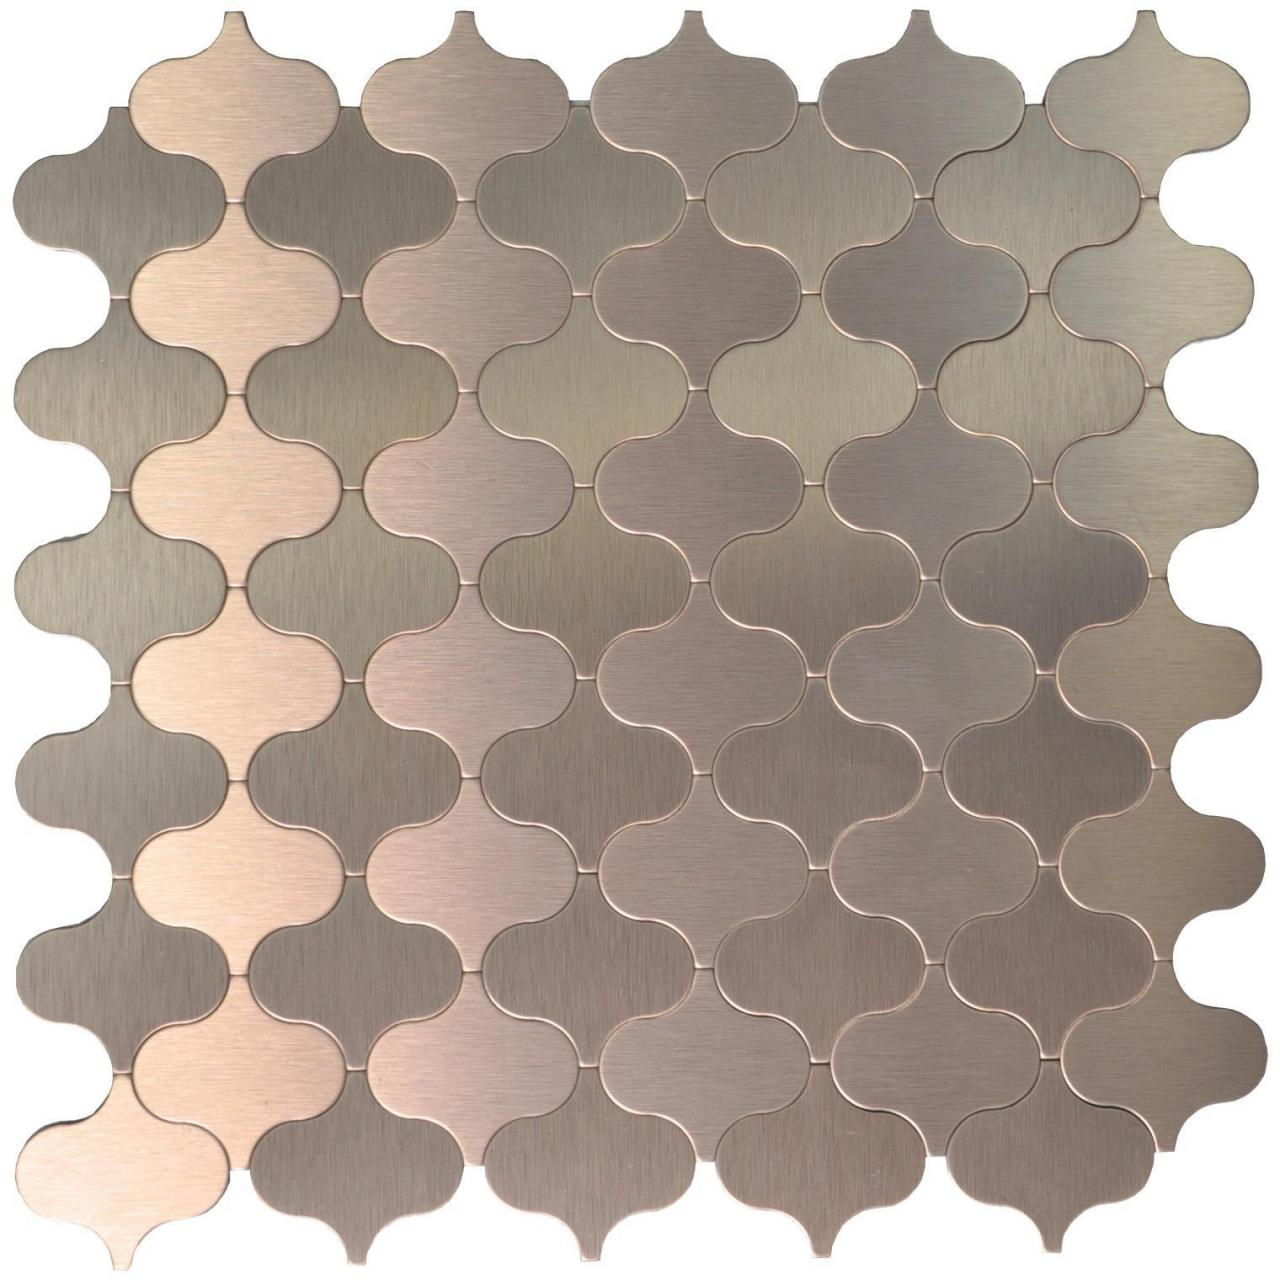 Wholesale A16005 - 10 Sheets Peel & Stick Aluminum Metal Mosaic Tile Bronze Lantern Style 12x12In from china suppliers